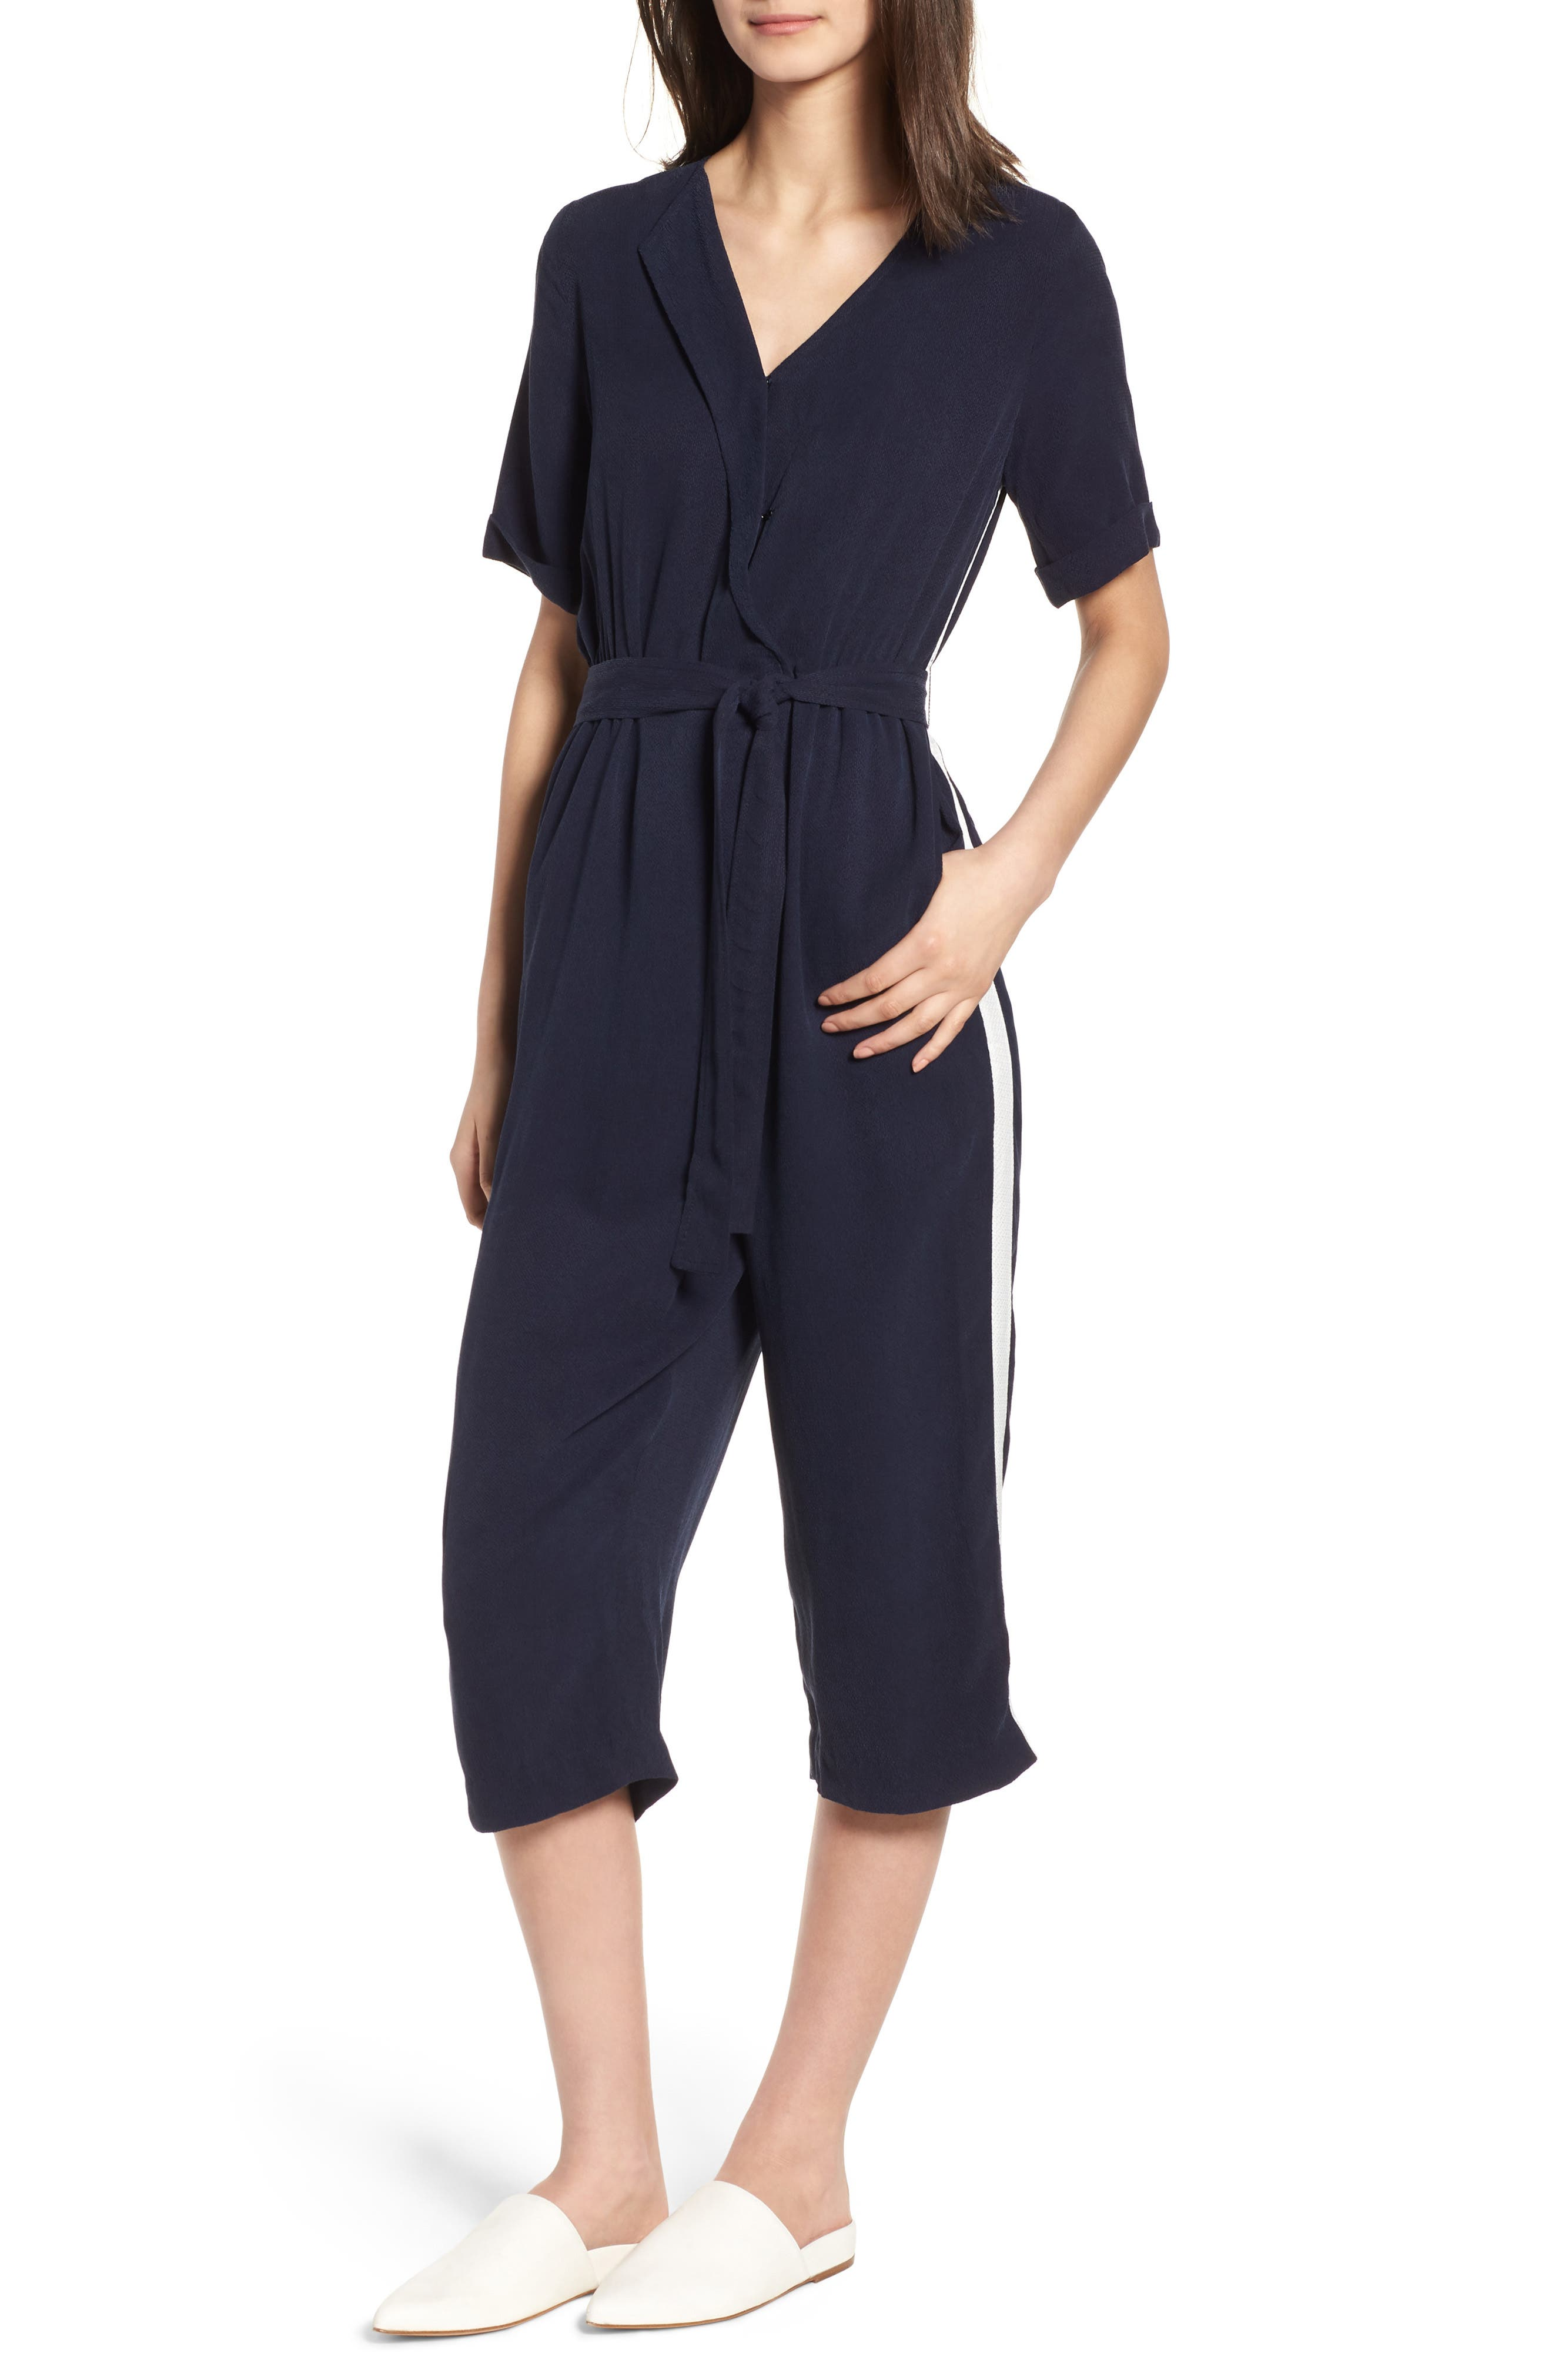 Downstairs Crop Jumpsuit,                             Main thumbnail 1, color,                             Navy